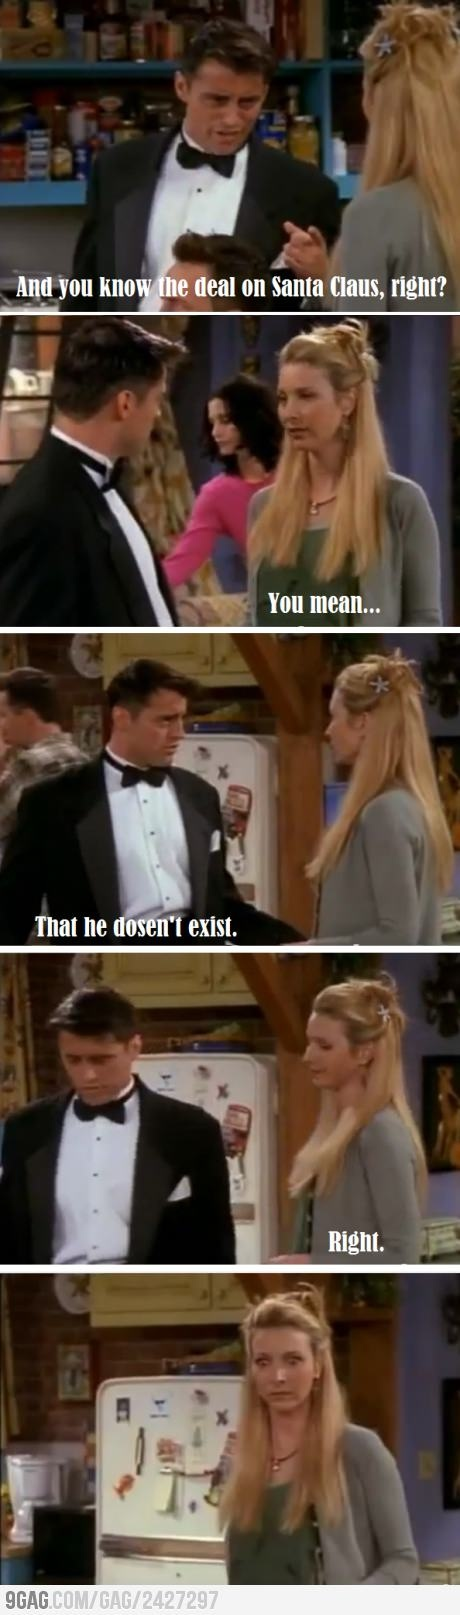 Poor Pheobe...but hilarious at the same time! I love FRIENDS :)